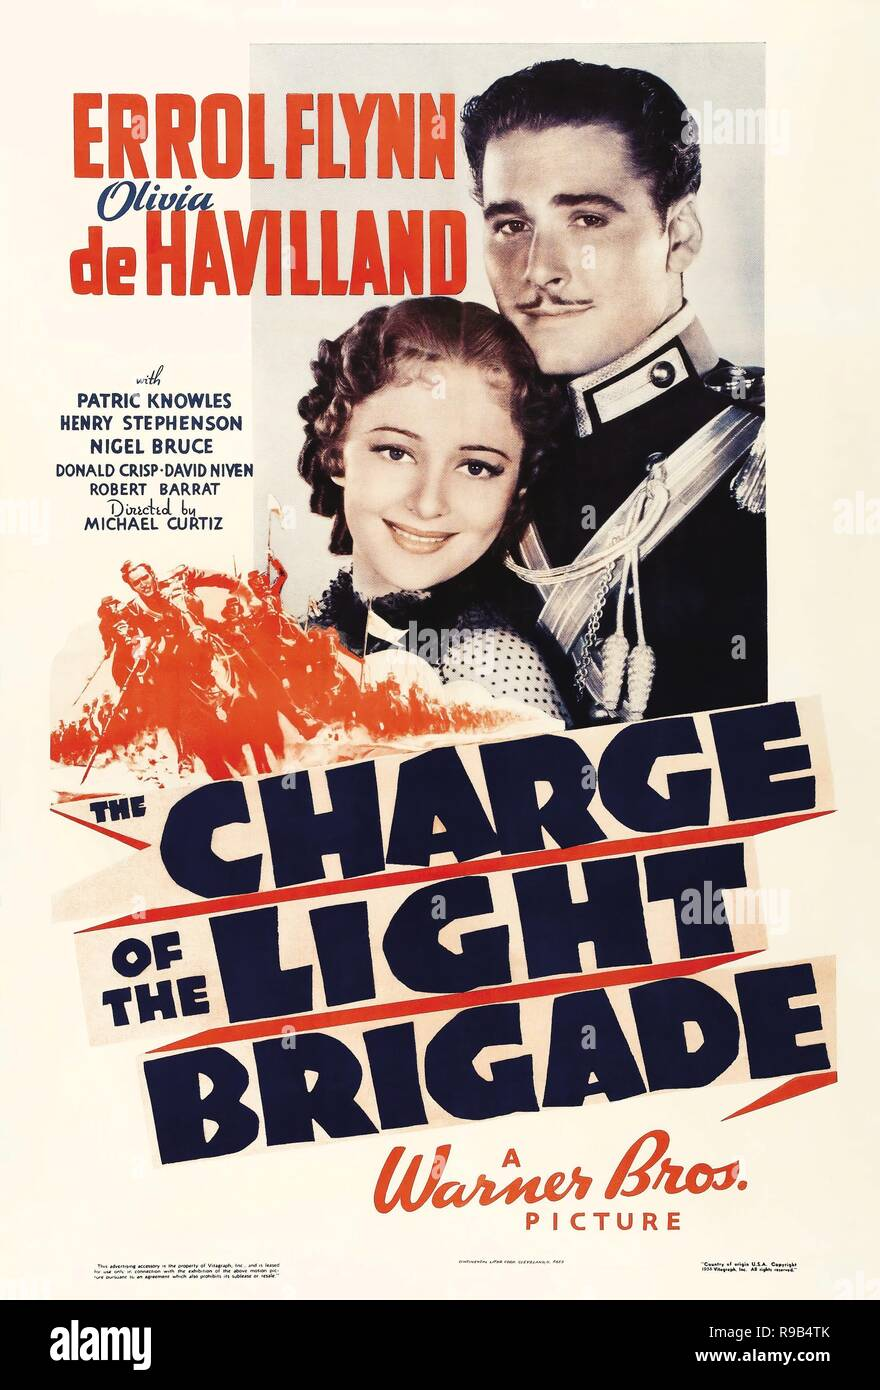 Original film title: THE CHARGE OF THE LIGHT BRIGADE. English title: THE CHARGE OF THE LIGHT BRIGADE. Year: 1936. Director: MICHAEL CURTIZ. Credit: WARNER BROTHERS / Album - Stock Image